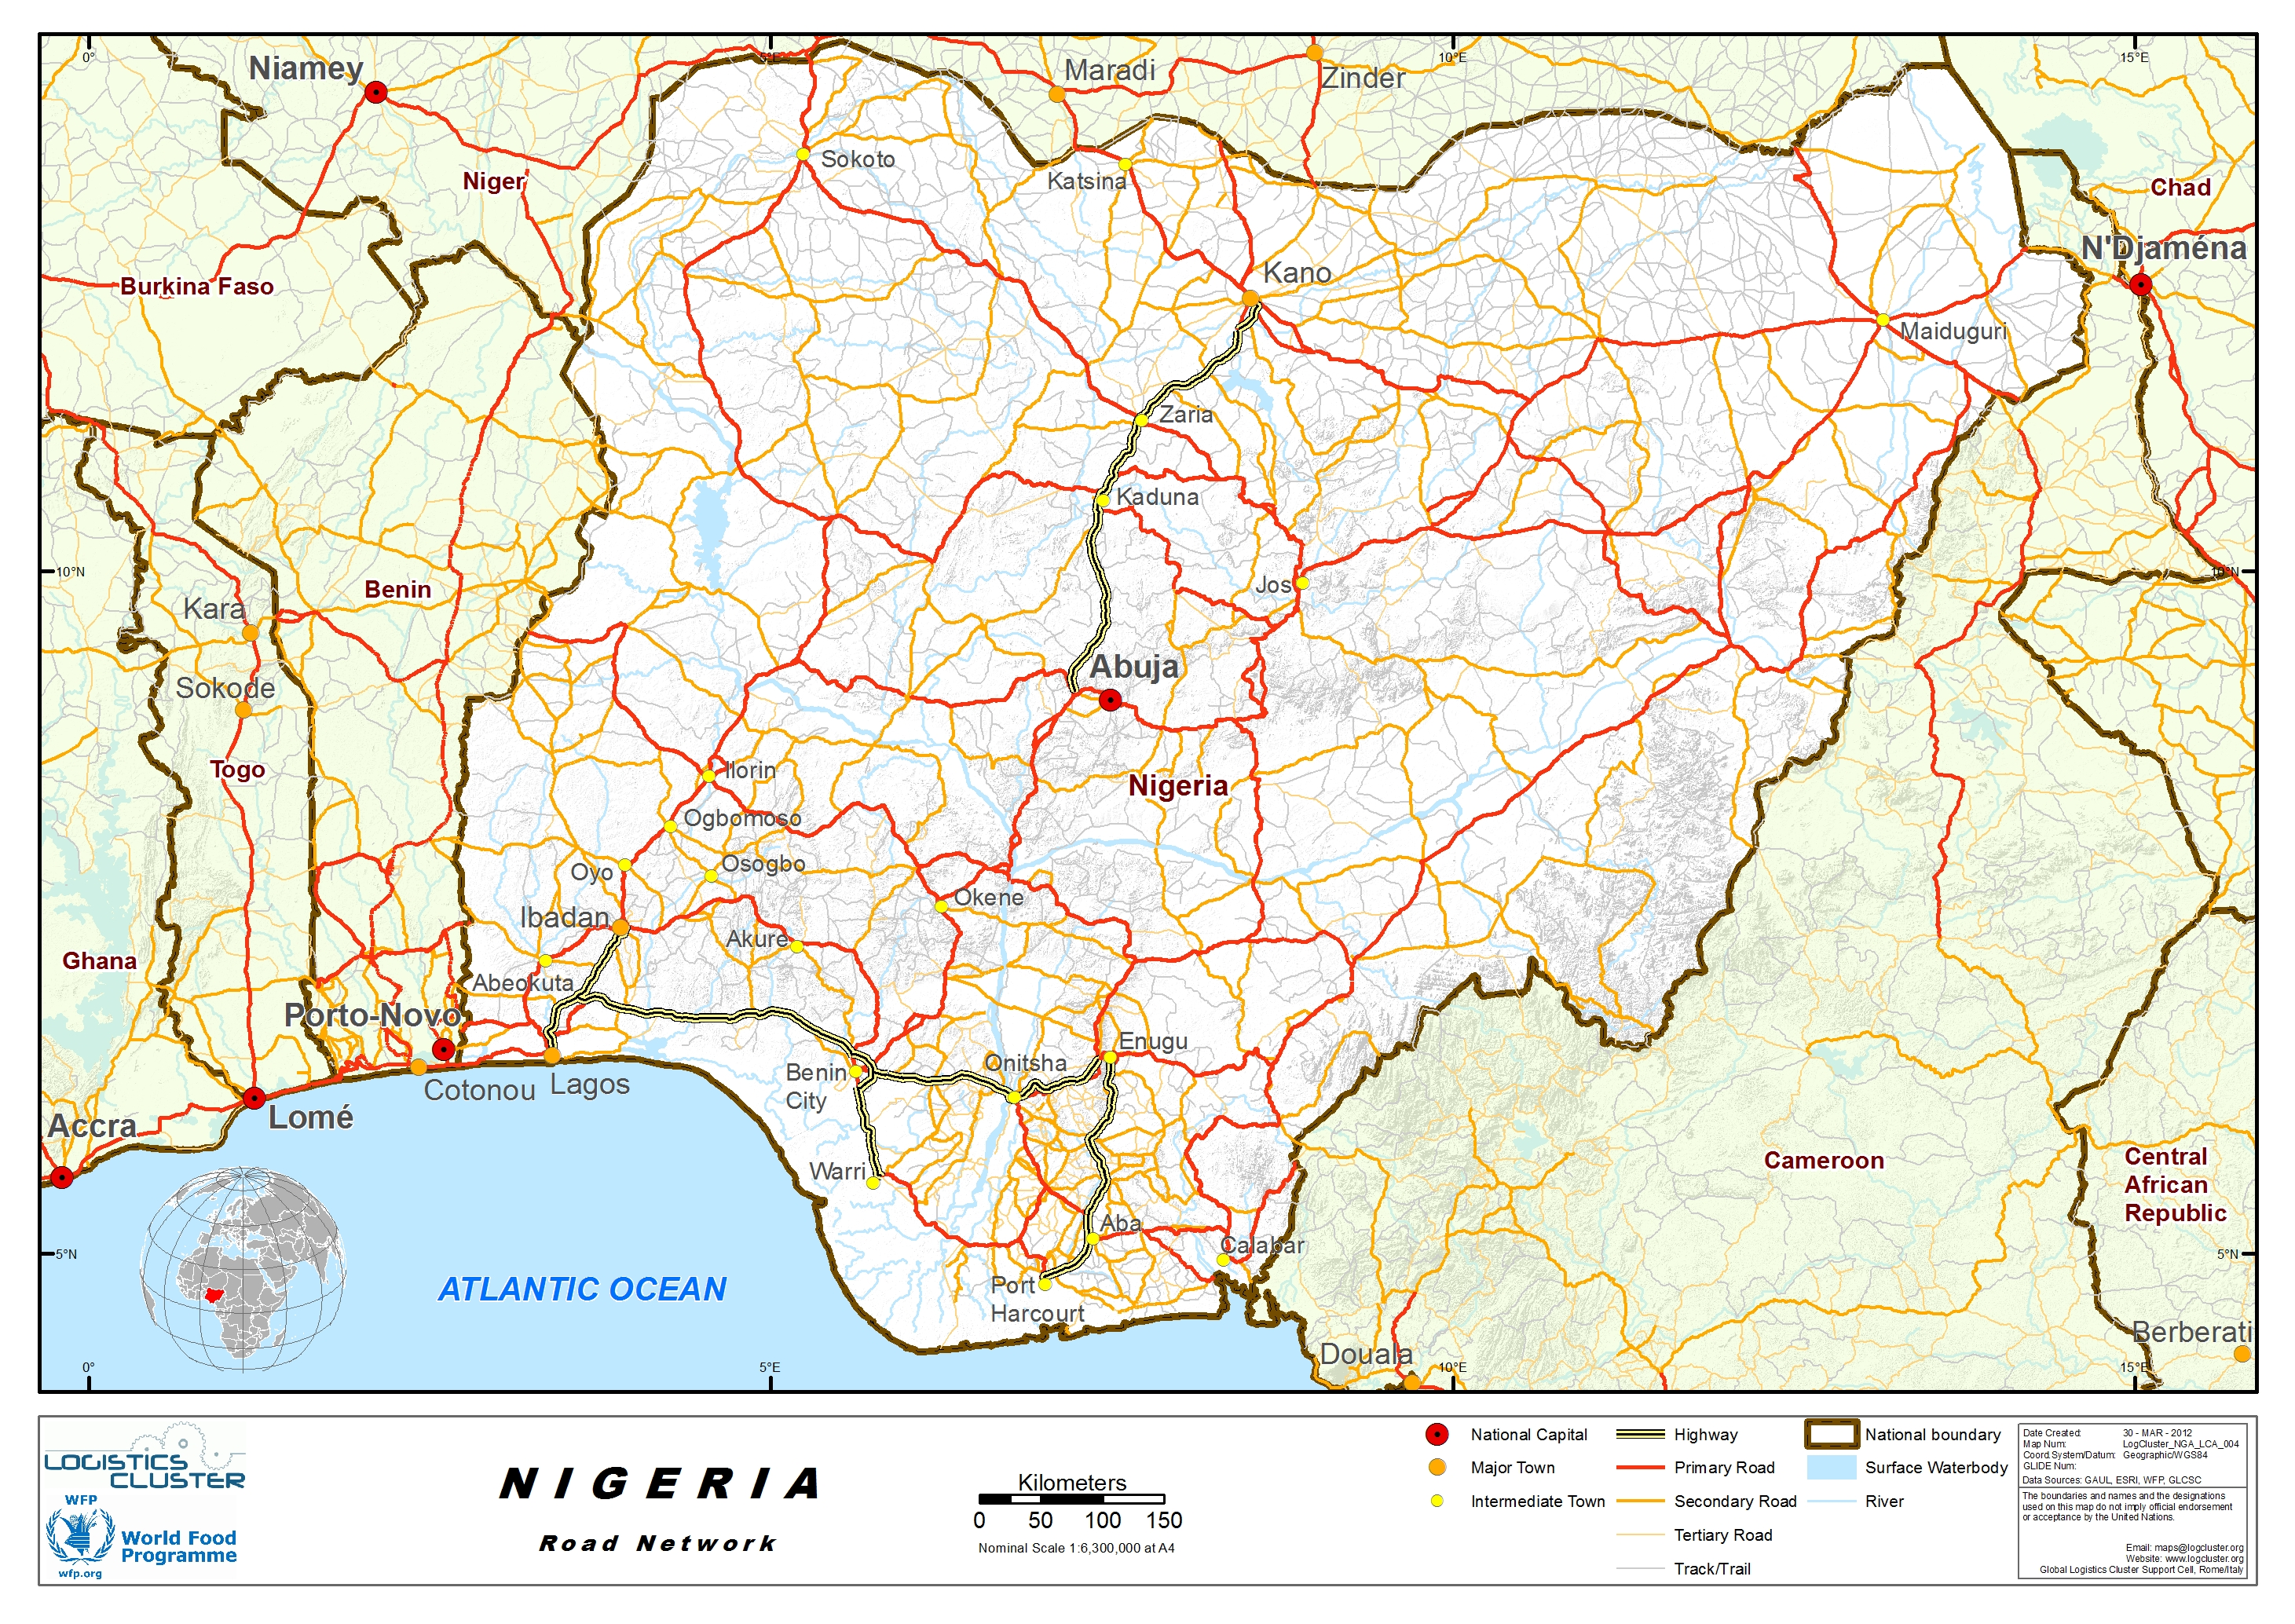 Country profile of Nigeria | ACAPS on ethnic map of nigeria, historical map of nigeria, religious map of nigeria, international map of nigeria, demographic map of nigeria, development map of nigeria, ecological map of nigeria, language map of nigeria, geographic map of nigeria, structural map of nigeria, hydrological map of nigeria, linguistic map of nigeria, industrial map of nigeria, geologic map of nigeria, environmental map of nigeria, economic map of nigeria, geographical map of nigeria, geological map of nigeria, topographical map of nigeria, topographic map of nigeria,